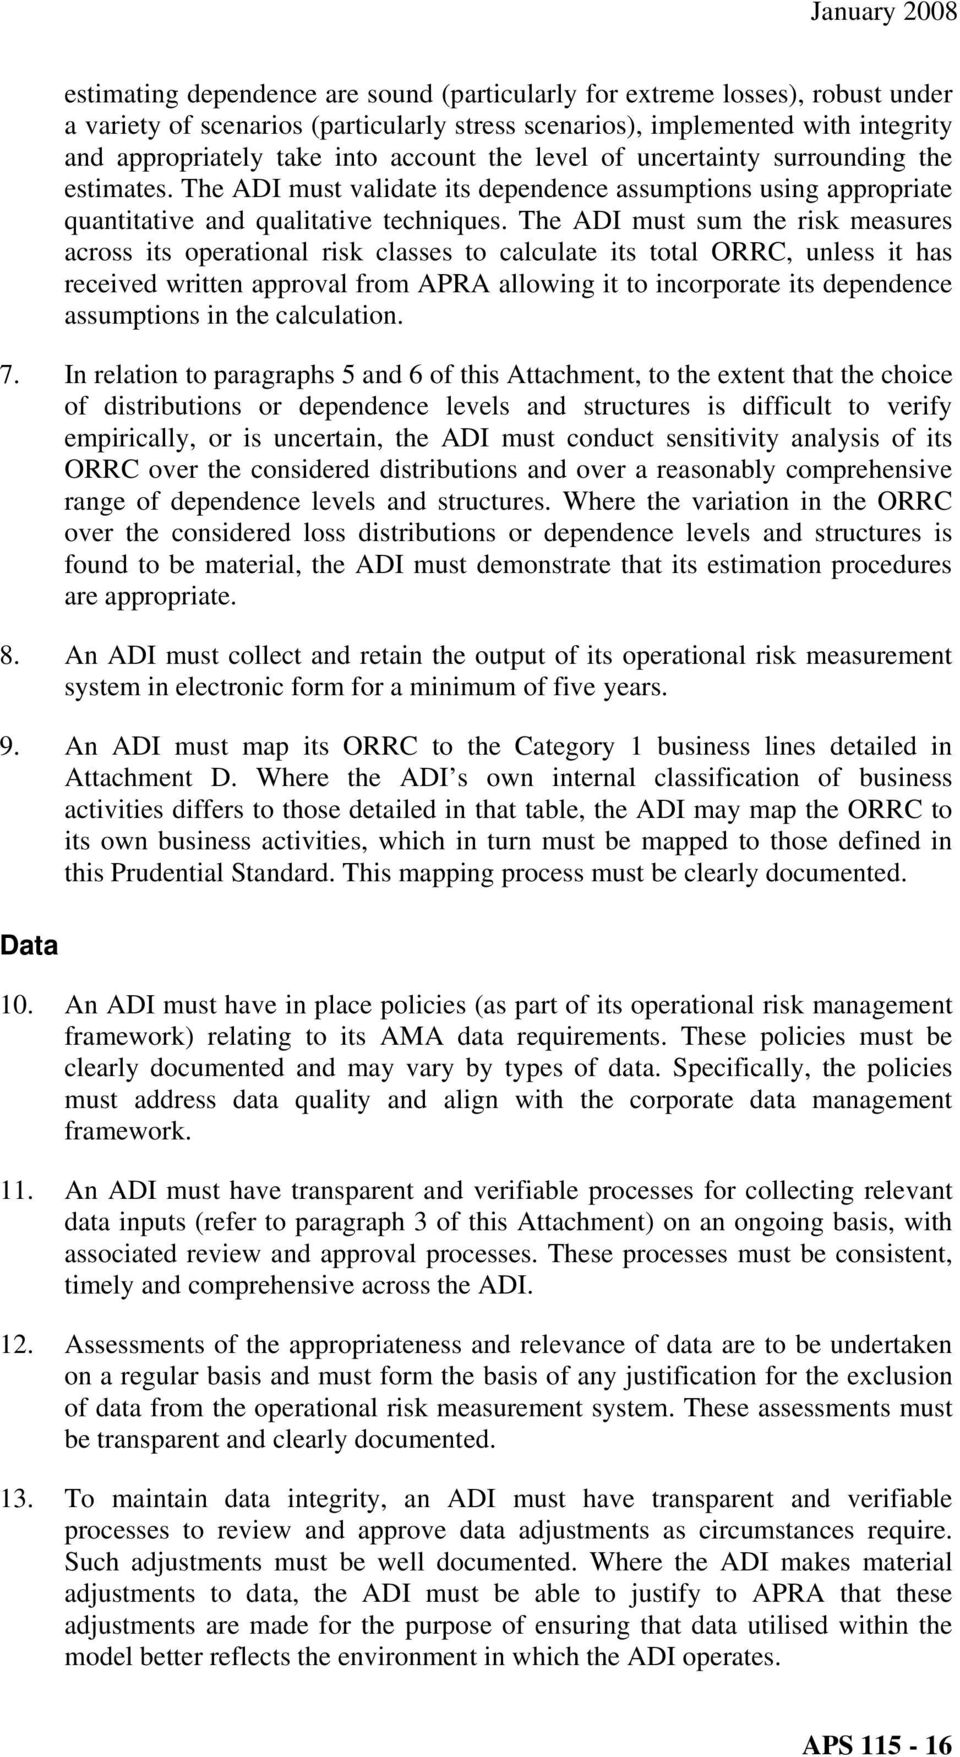 The ADI must sum the risk measures across its operational risk classes to calculate its total ORRC, unless it has received written approval from APRA allowing it to incorporate its dependence